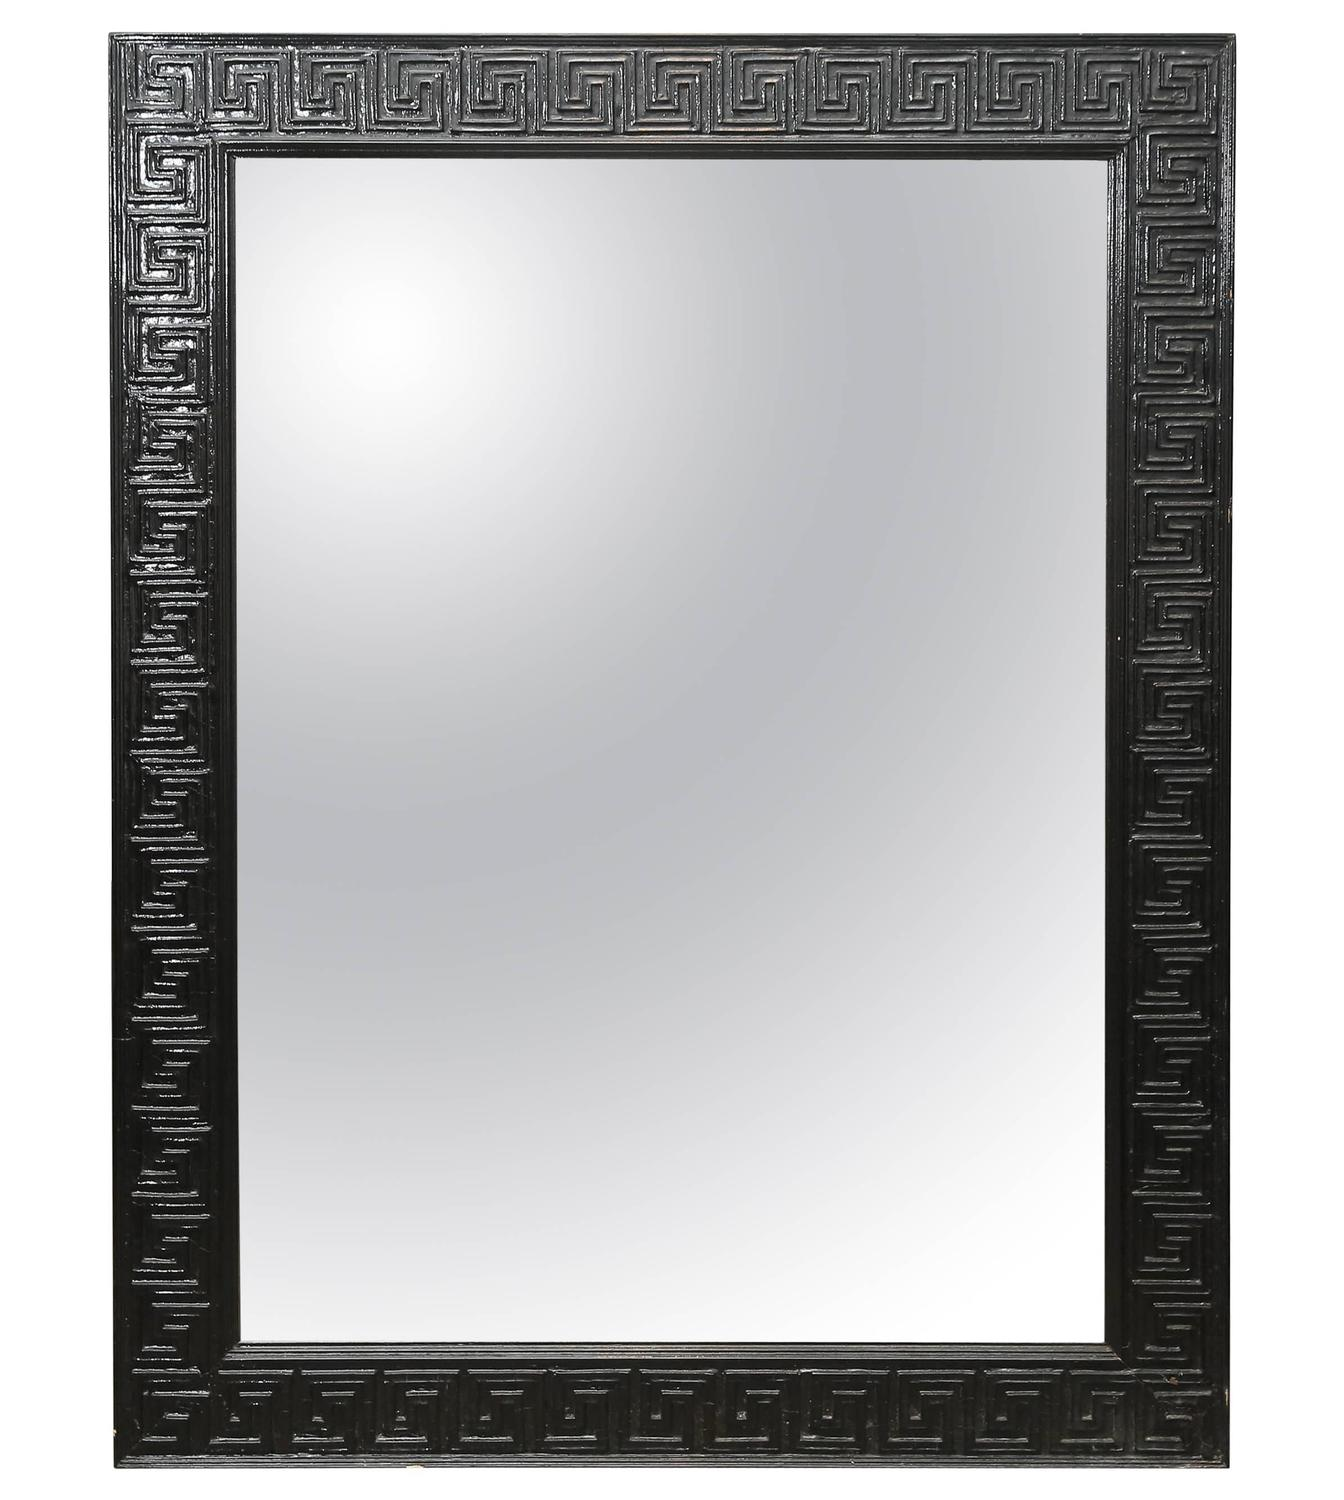 Black Lacquered Greek Key Mirror For Sale at 1stdibs : 3585793z from 1stdibs.com size 1344 x 1500 jpeg 144kB